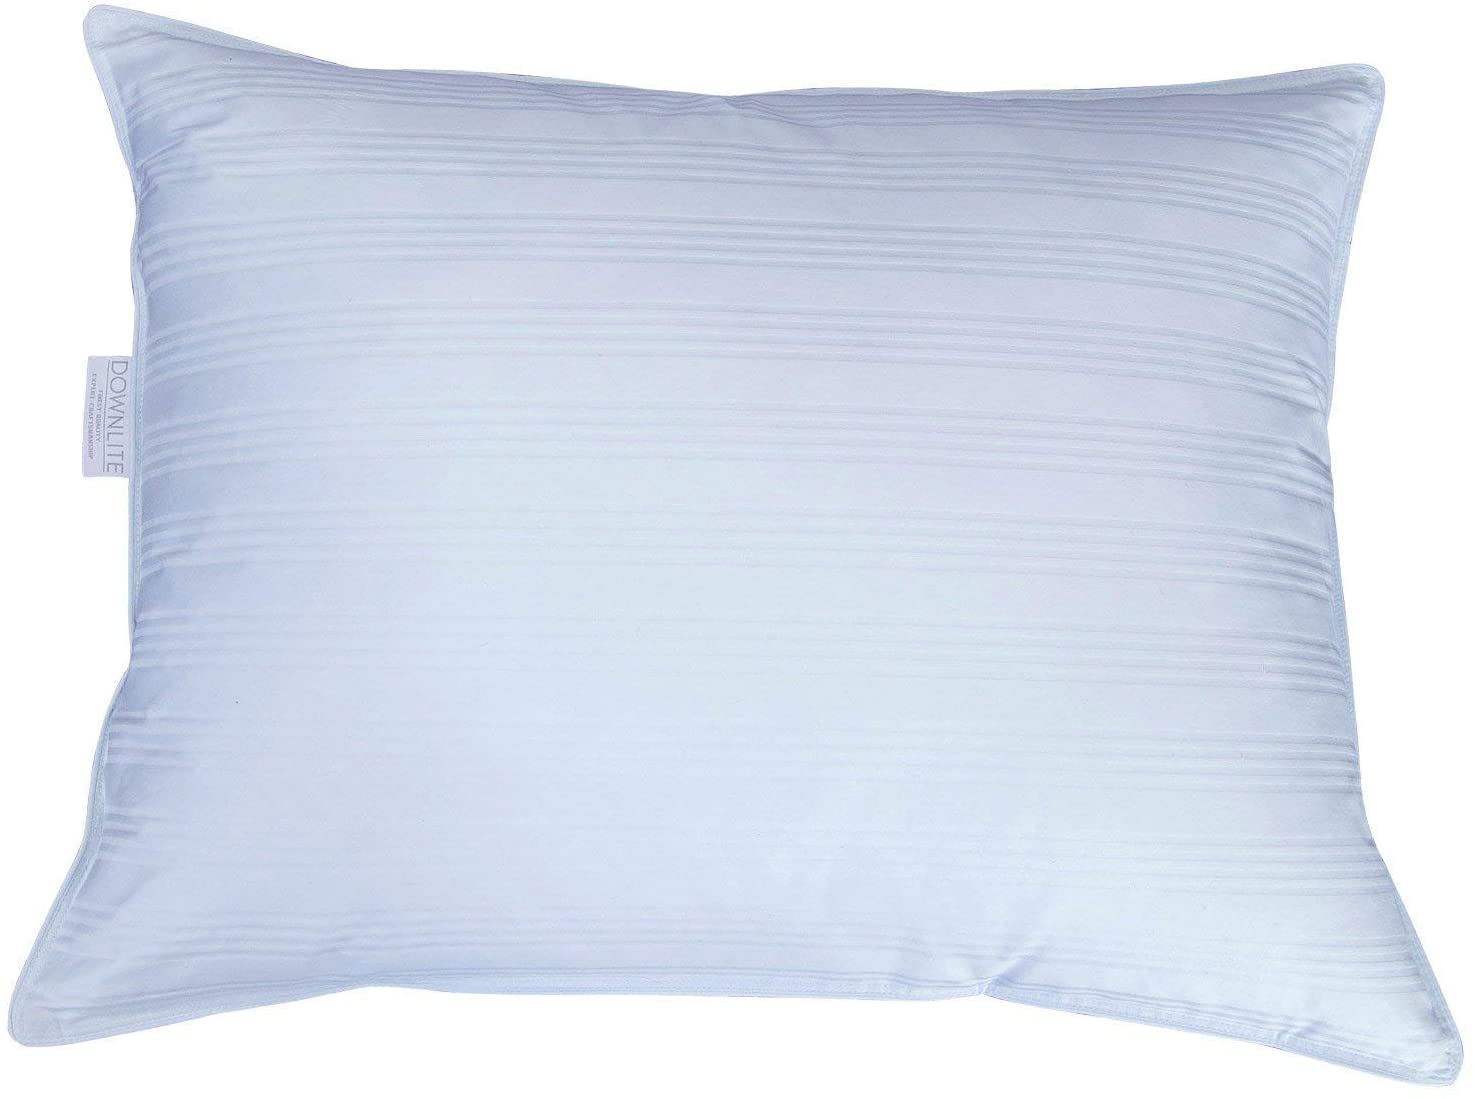 DOWNLITE Extra Soft Pillow for Stomach Sleepers